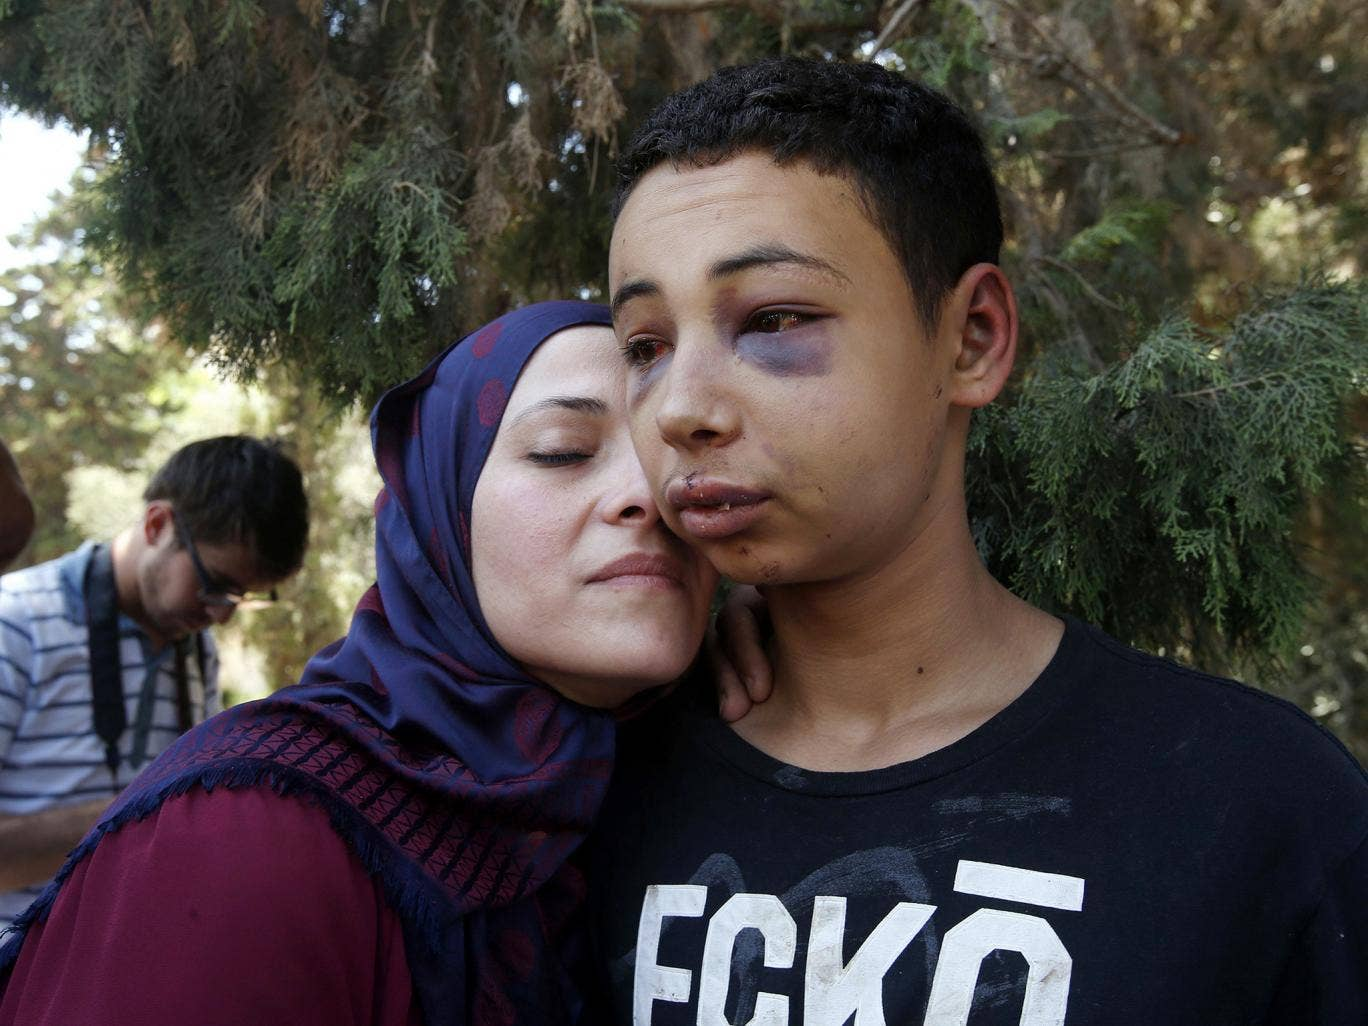 Tariq Khdeir is greeted by his mother after being released from jail in Jerusalem. An Israeli judge released from jail and placed under house arrest the 15-year-old American of Palestinian descent whose apparent beating by Israeli police in East Jerusalem